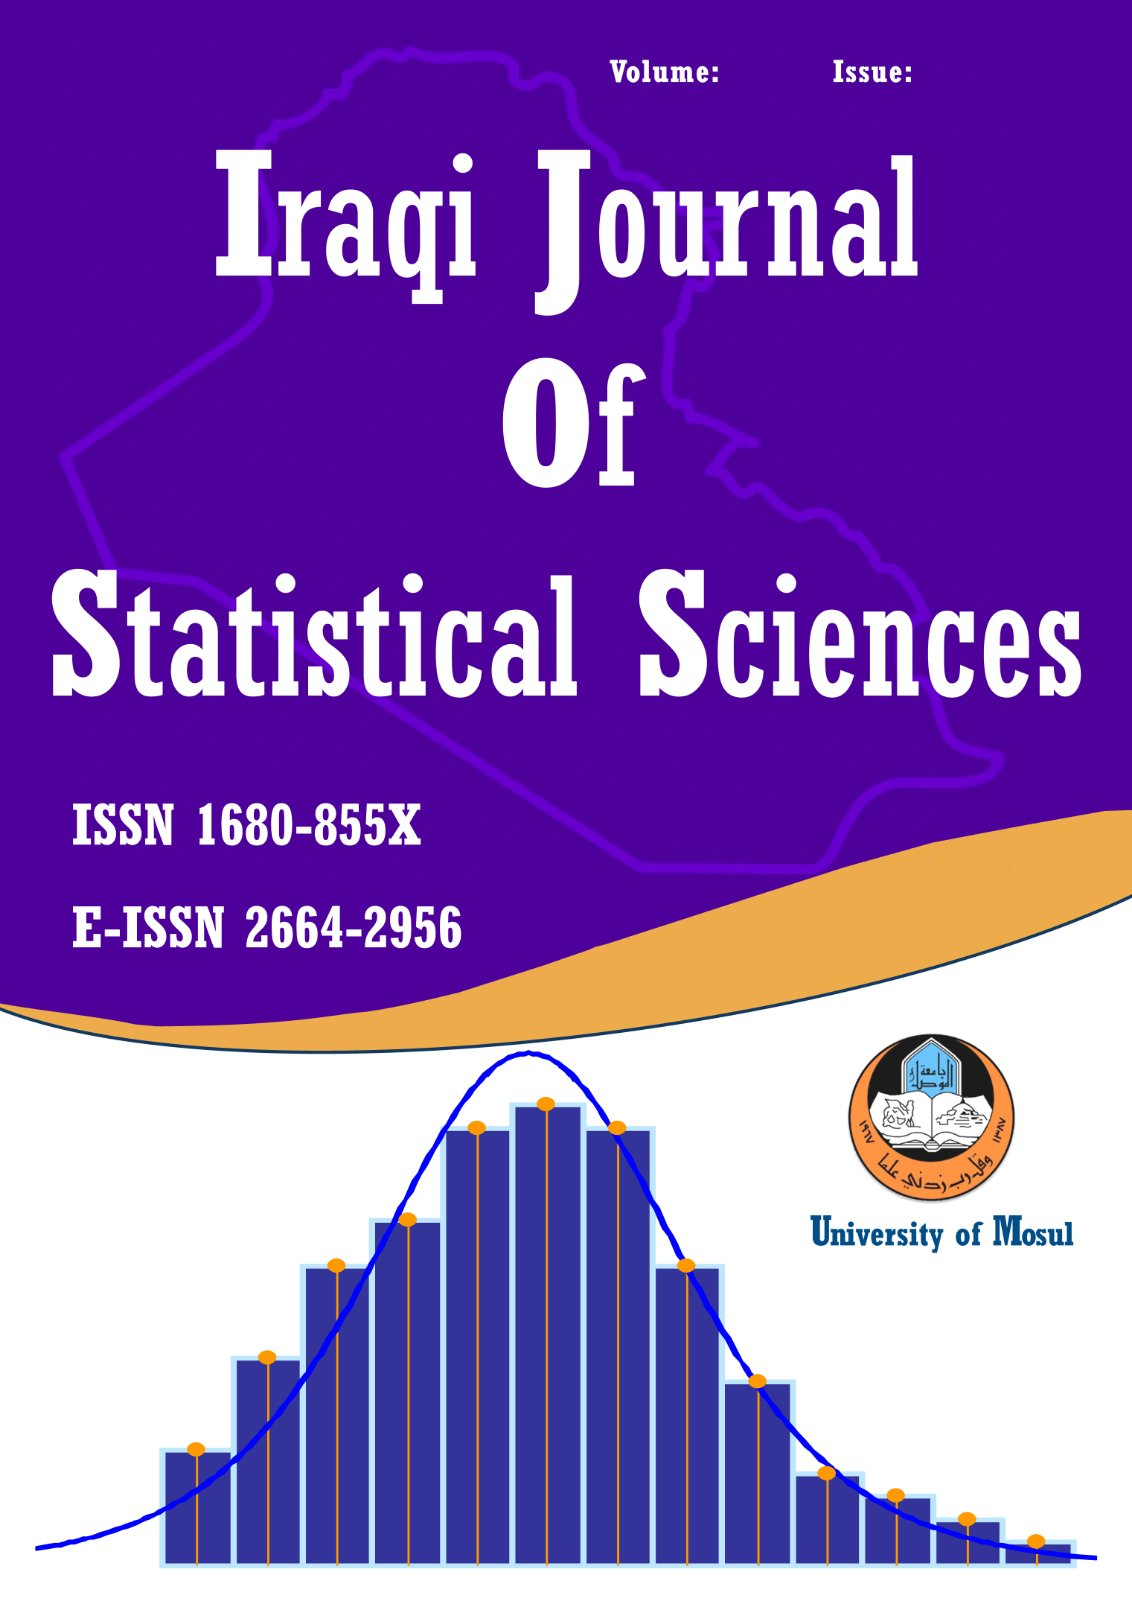 IRAQI JOURNAL OF STATISTICAL SCIENCES